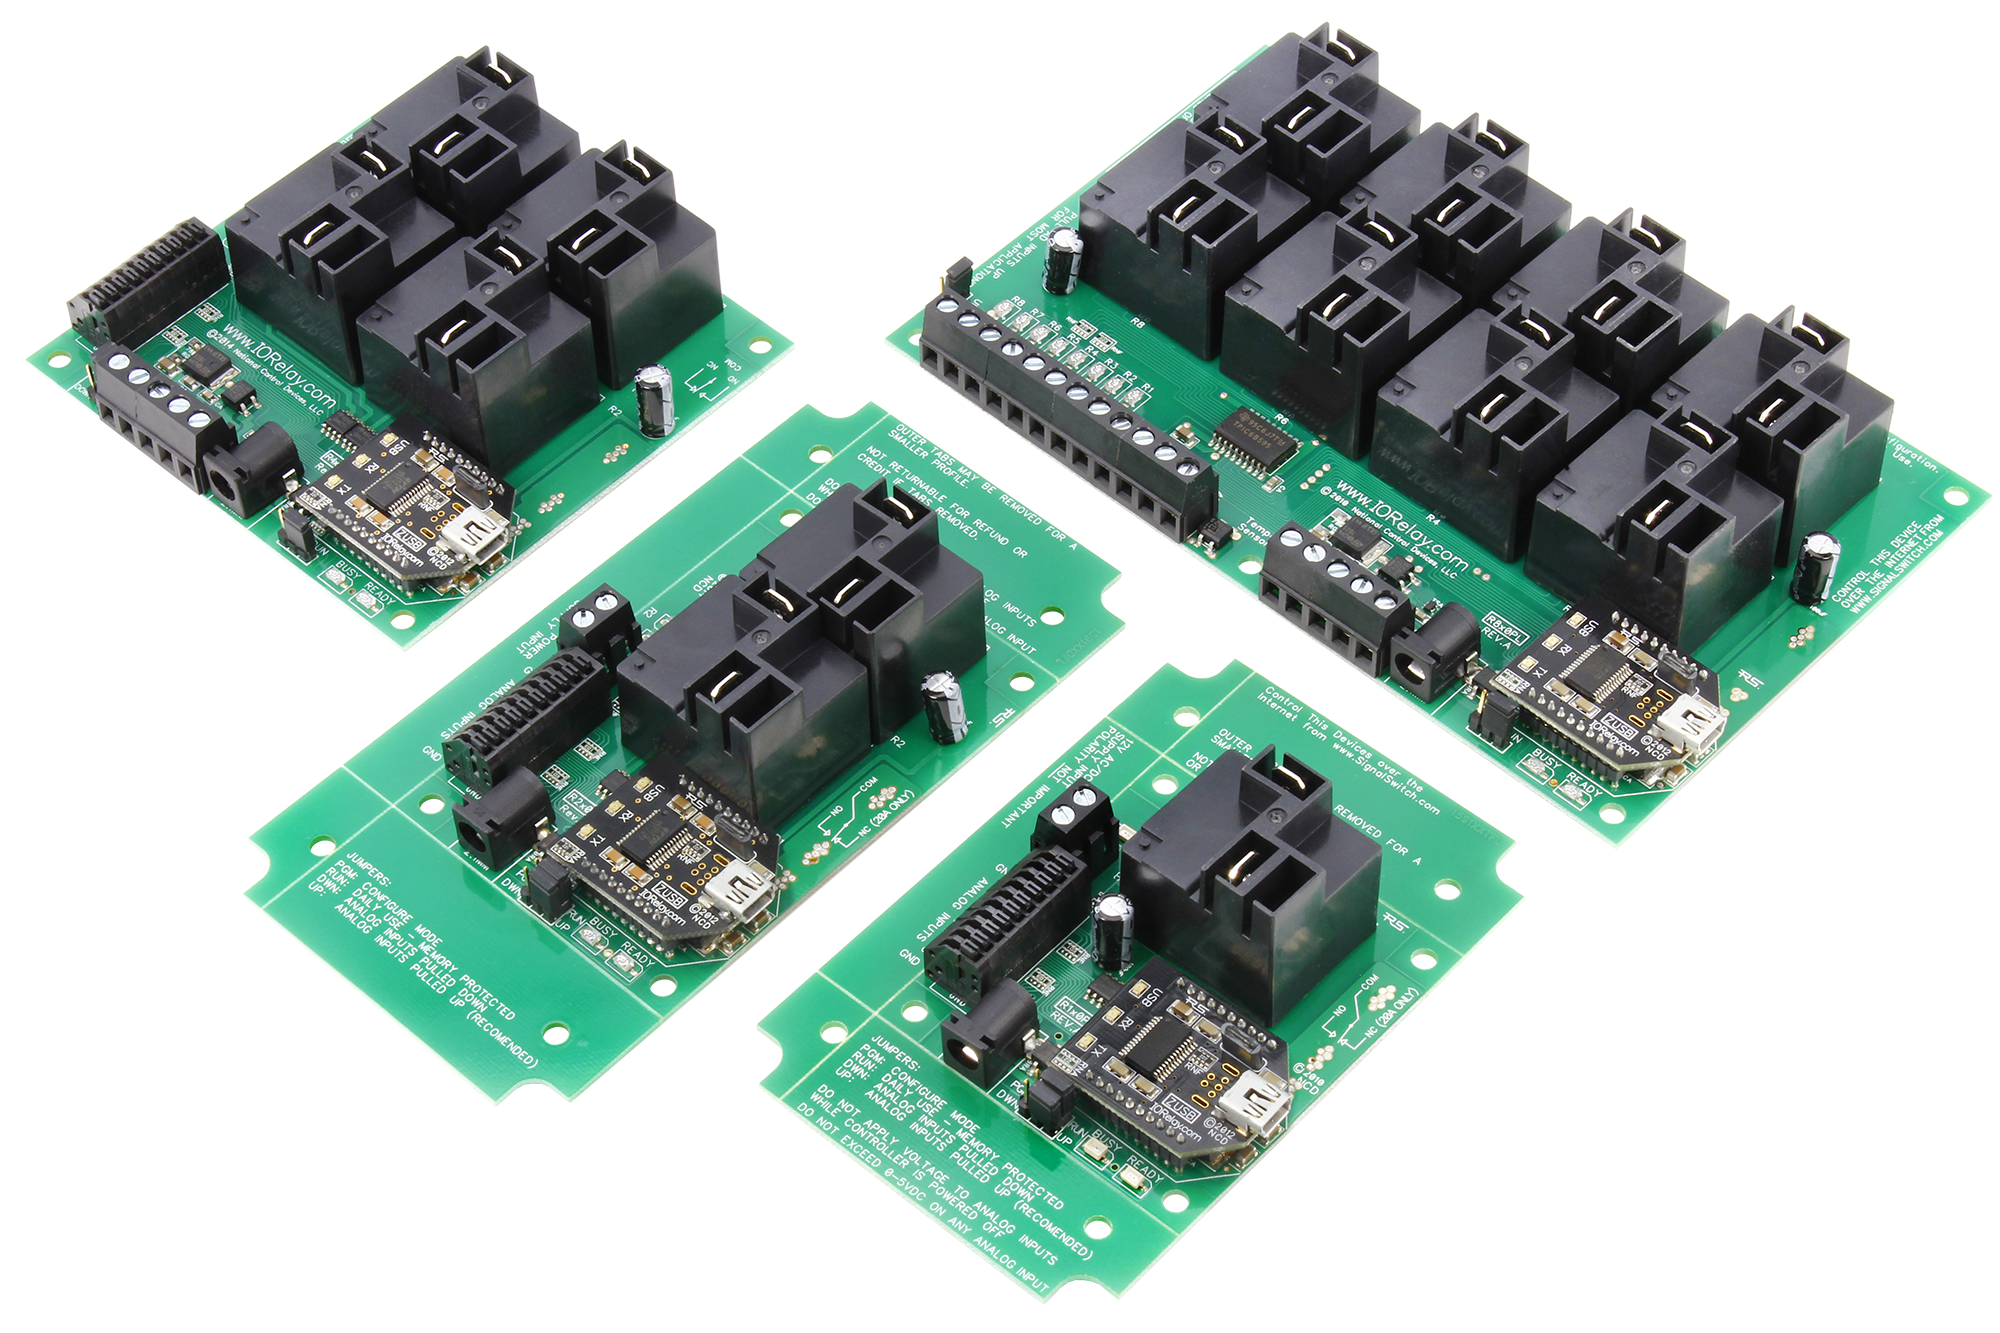 Usb Relay Controller High Power Relays For Industrial Applications 12v 400 Ohm Spdt Controllers With And Analog To Digital Converters